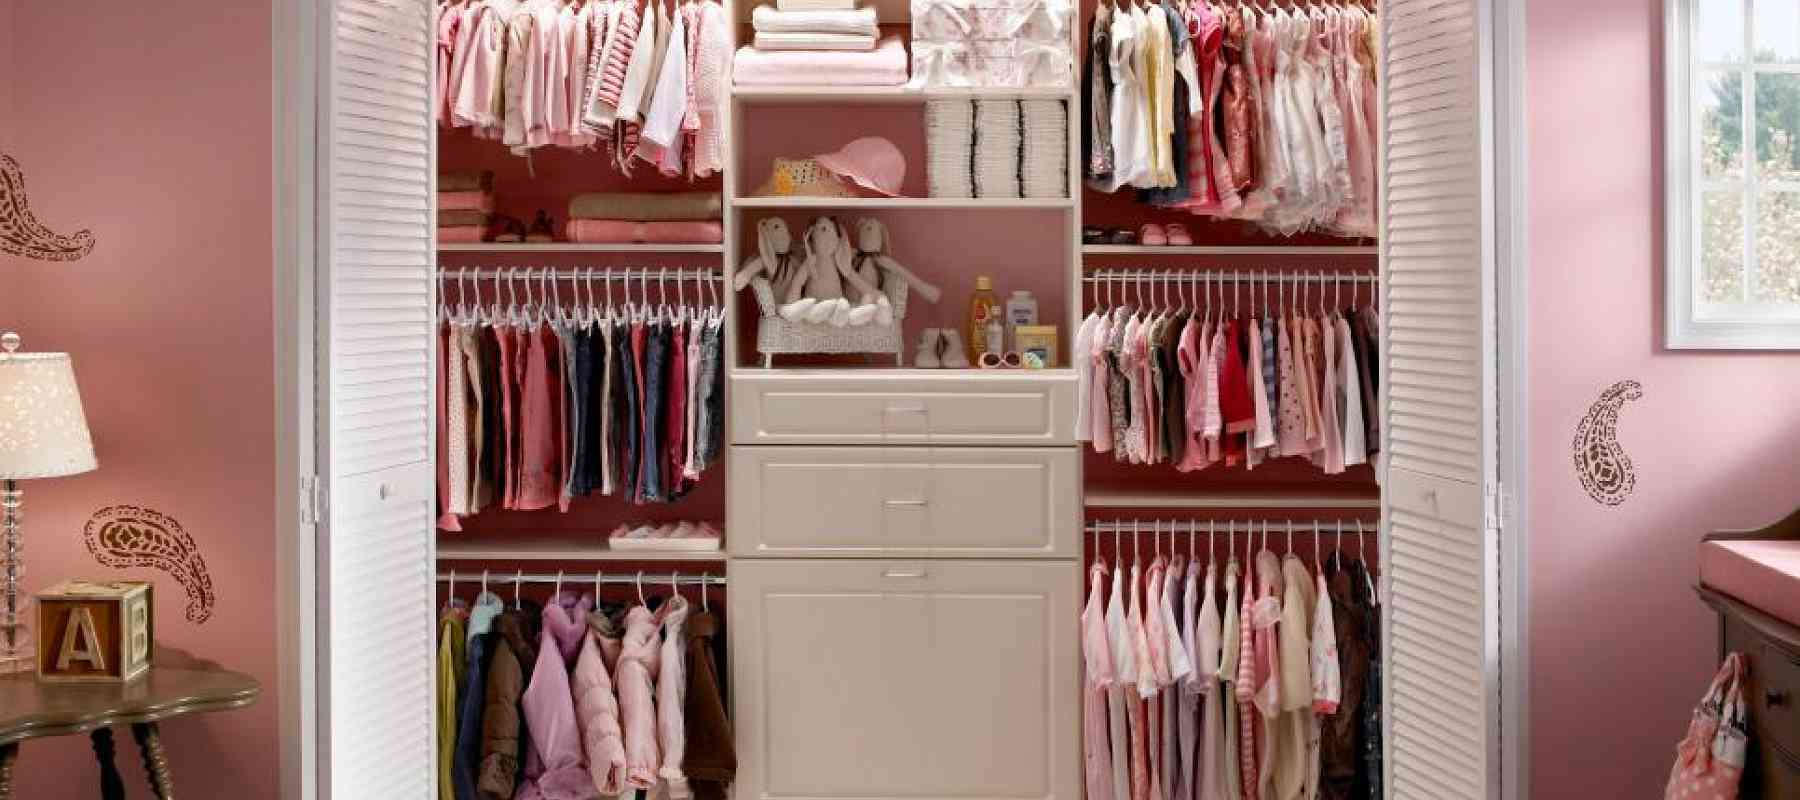 Make Baby Space by Customizing a Closet